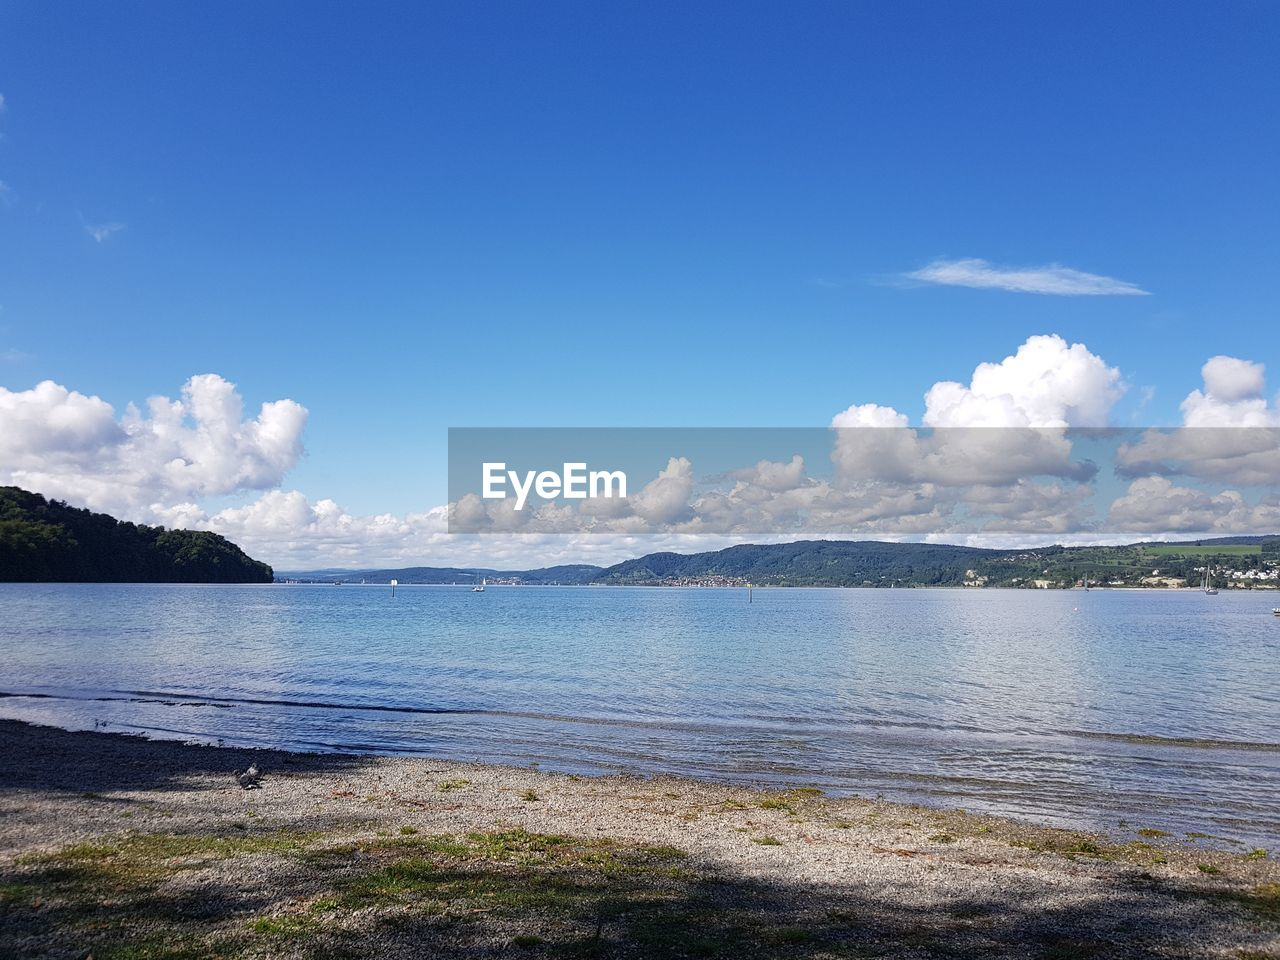 water, beauty in nature, nature, tranquility, scenics, sky, mountain, lake, tranquil scene, no people, day, cloud - sky, outdoors, landscape, blue